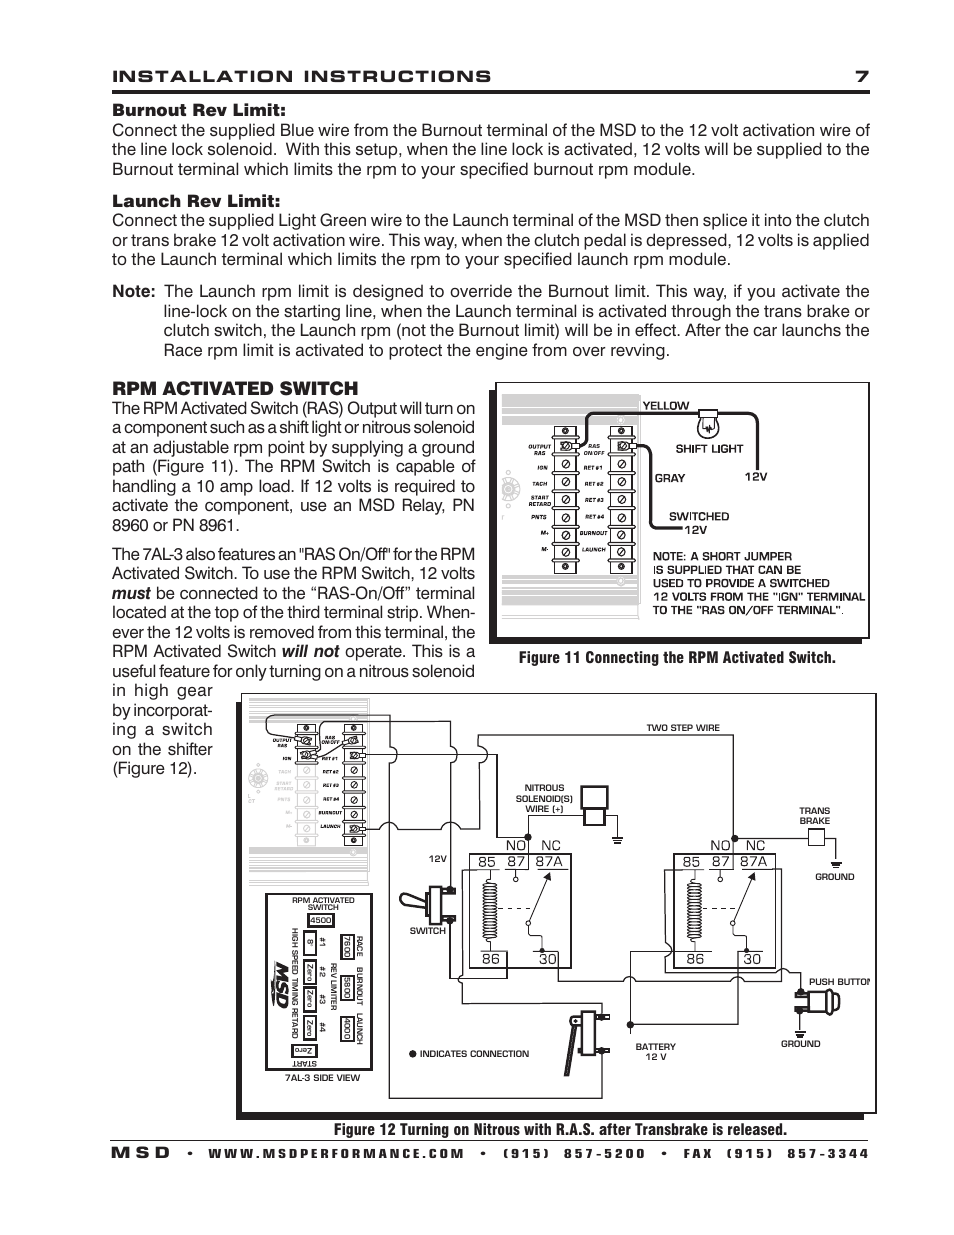 Msd 7al 3 Wiring Diagram Chevy - Wiring Diagram Online Auto Meter Tach Wiring Diagram Al on gm alternator wiring diagram, oil gauge wiring diagram, msd distributor wiring diagram, ballast resistor wiring diagram, winch wiring diagram, auto meter tach wiring with msd, volt meter wiring diagram, auto meter ultra lite, fuel pump wiring diagram, radio wiring diagram, autometer gauge wiring diagram, light wiring diagram, auto meter tach disassembly, ignition wiring diagram, thermostat wiring diagram, tachometer wiring diagram, mitsubishi split system wiring diagram, coil wiring diagram, auto meter sport comp tach wiring, auto meter tachometer,